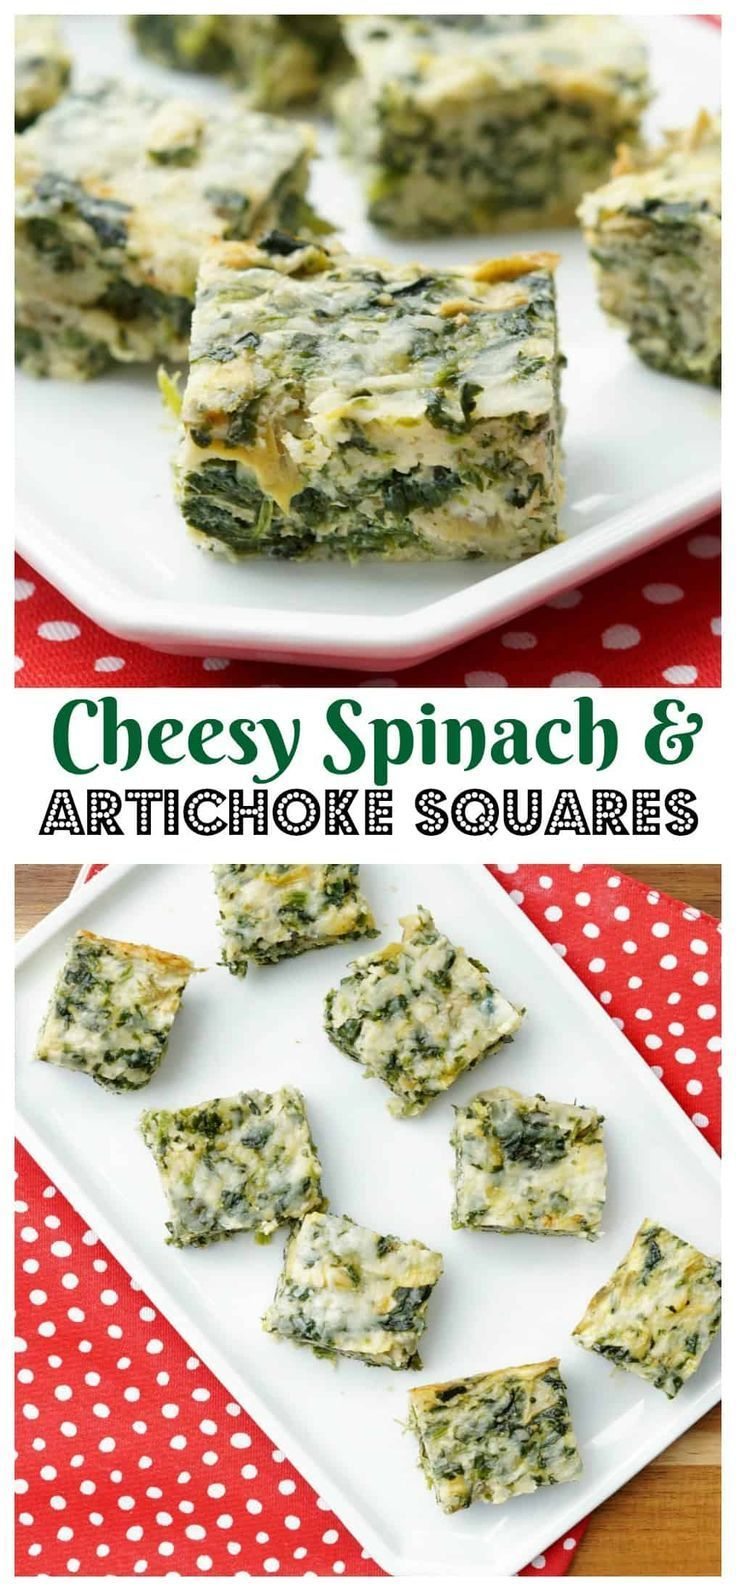 This Spinach and Artichoke Bites will be the most versatile dish on your table! Full of cheese, spinach, and artichokes, everyone's favorite dip becomes an easy side dish recipe! #appetizer #spinachandartichoke #apps #spinach #cheese #recipe #sidedish #partyfood